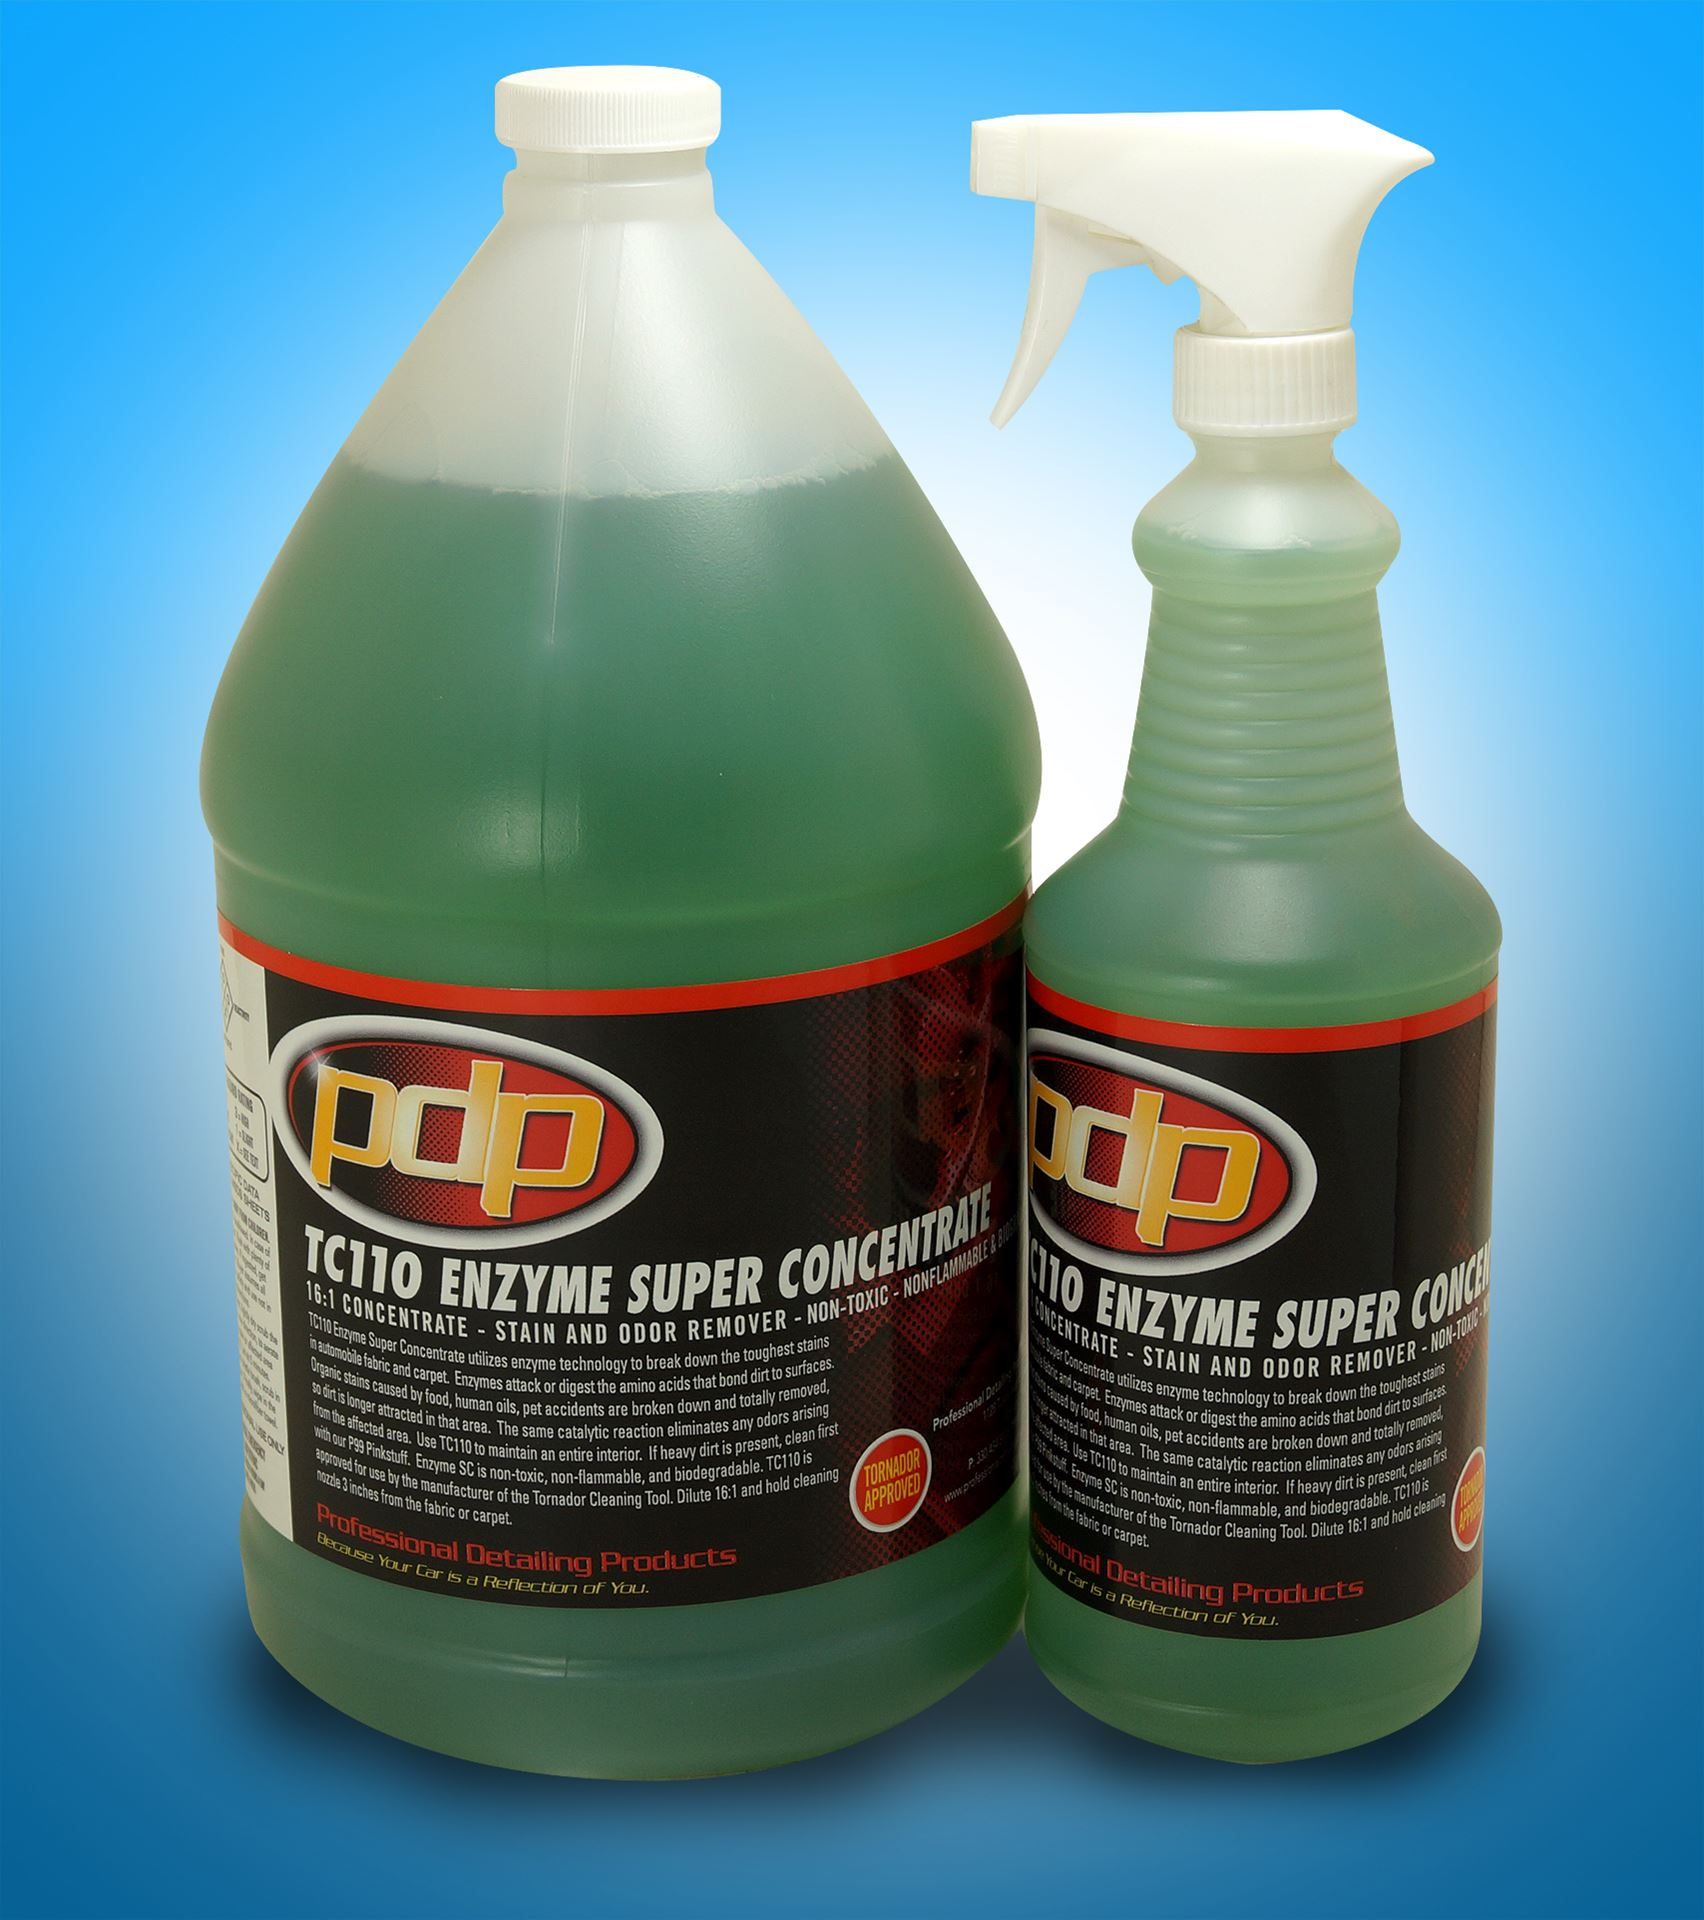 Enzyme Super Concentrate Cleaner Professional Detailing